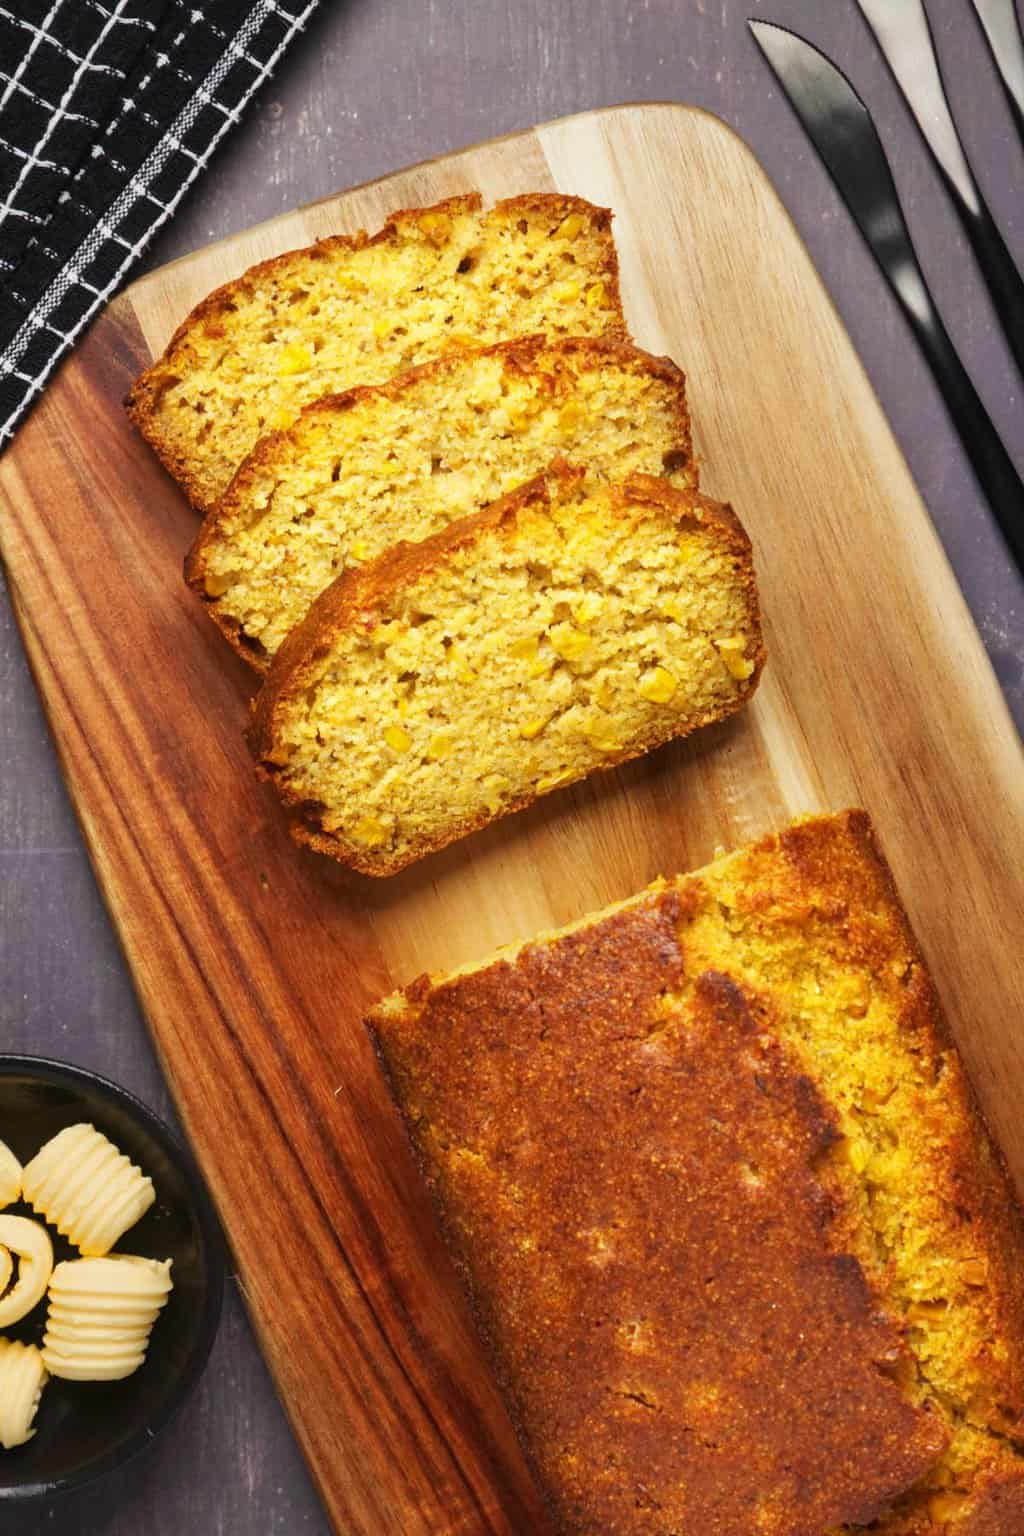 A loaf of vegan cornbread on a wooden board.